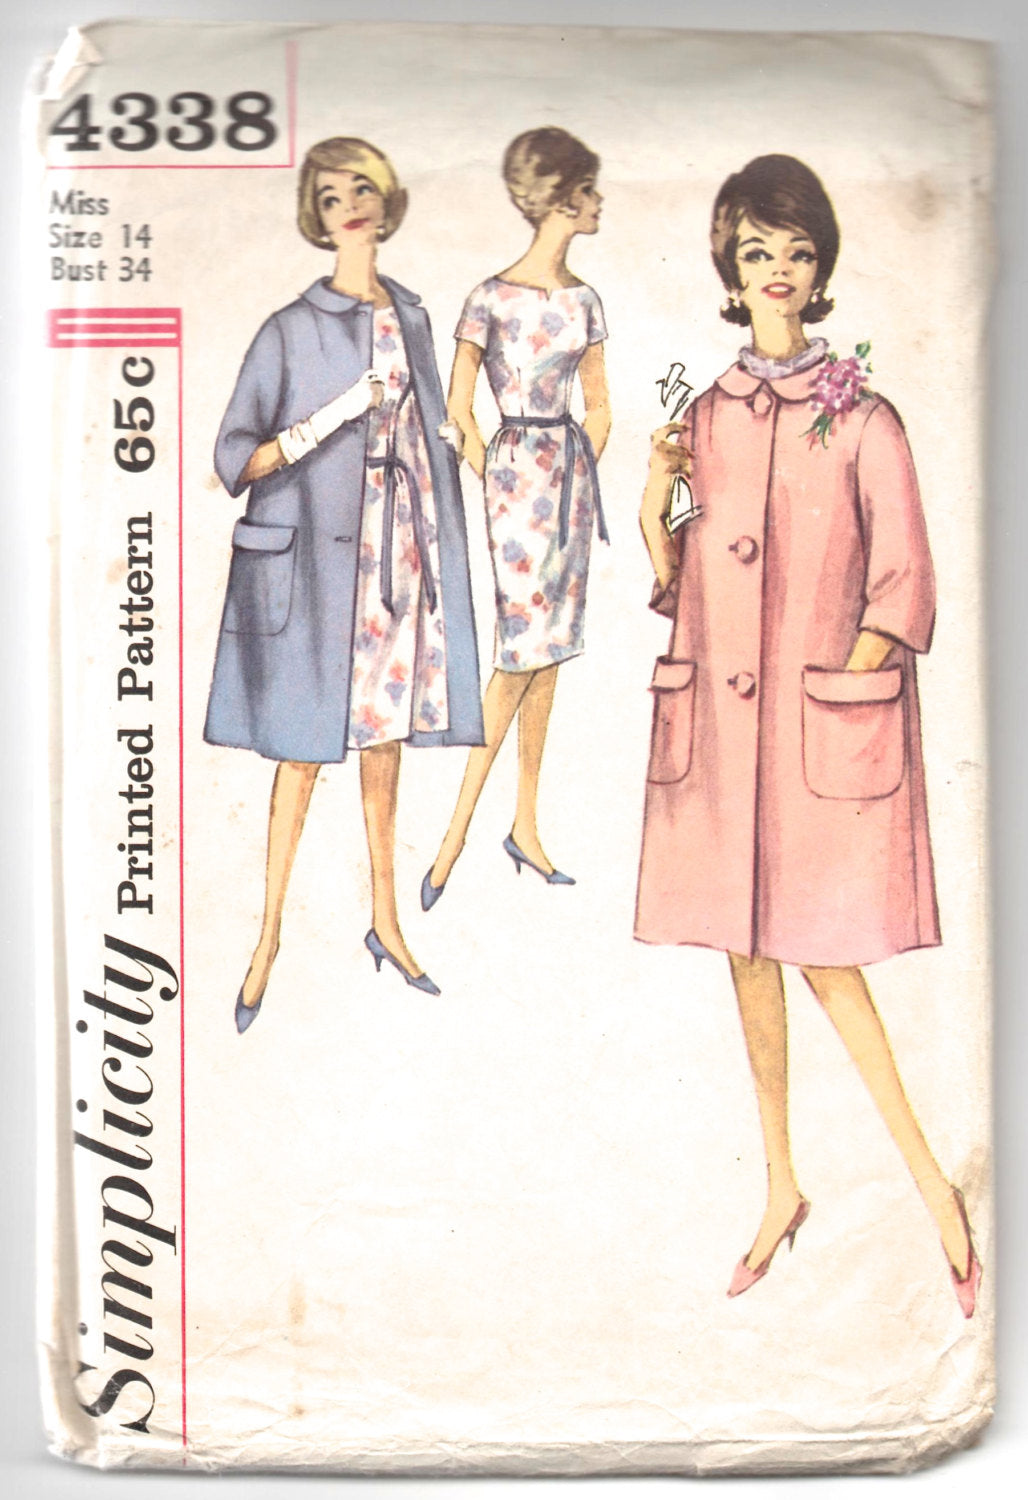 1960's Simplicity One Piece Dress and Coat Pattern - Bust 34